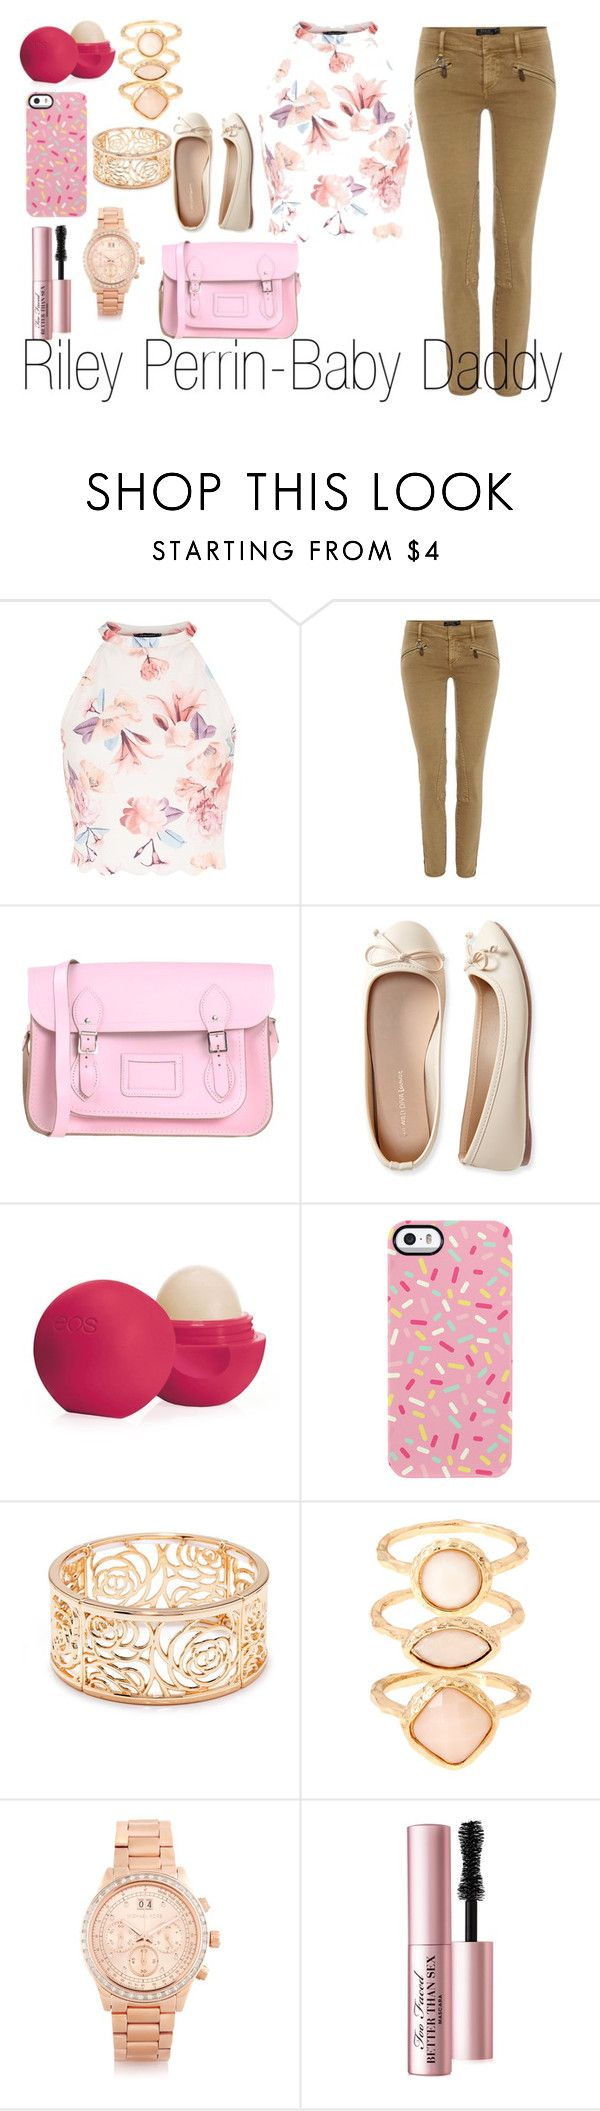 """""""Riley Perrin-Baby Daddy"""" by dailypopculture ❤ liked on Polyvore featuring Polo Ralph Lauren, The Cambridge Satchel Company, Aéropostale, Eos, Uncommon, Forever 21, Monsoon, Michael Kors and Too Faced Cosmetics"""